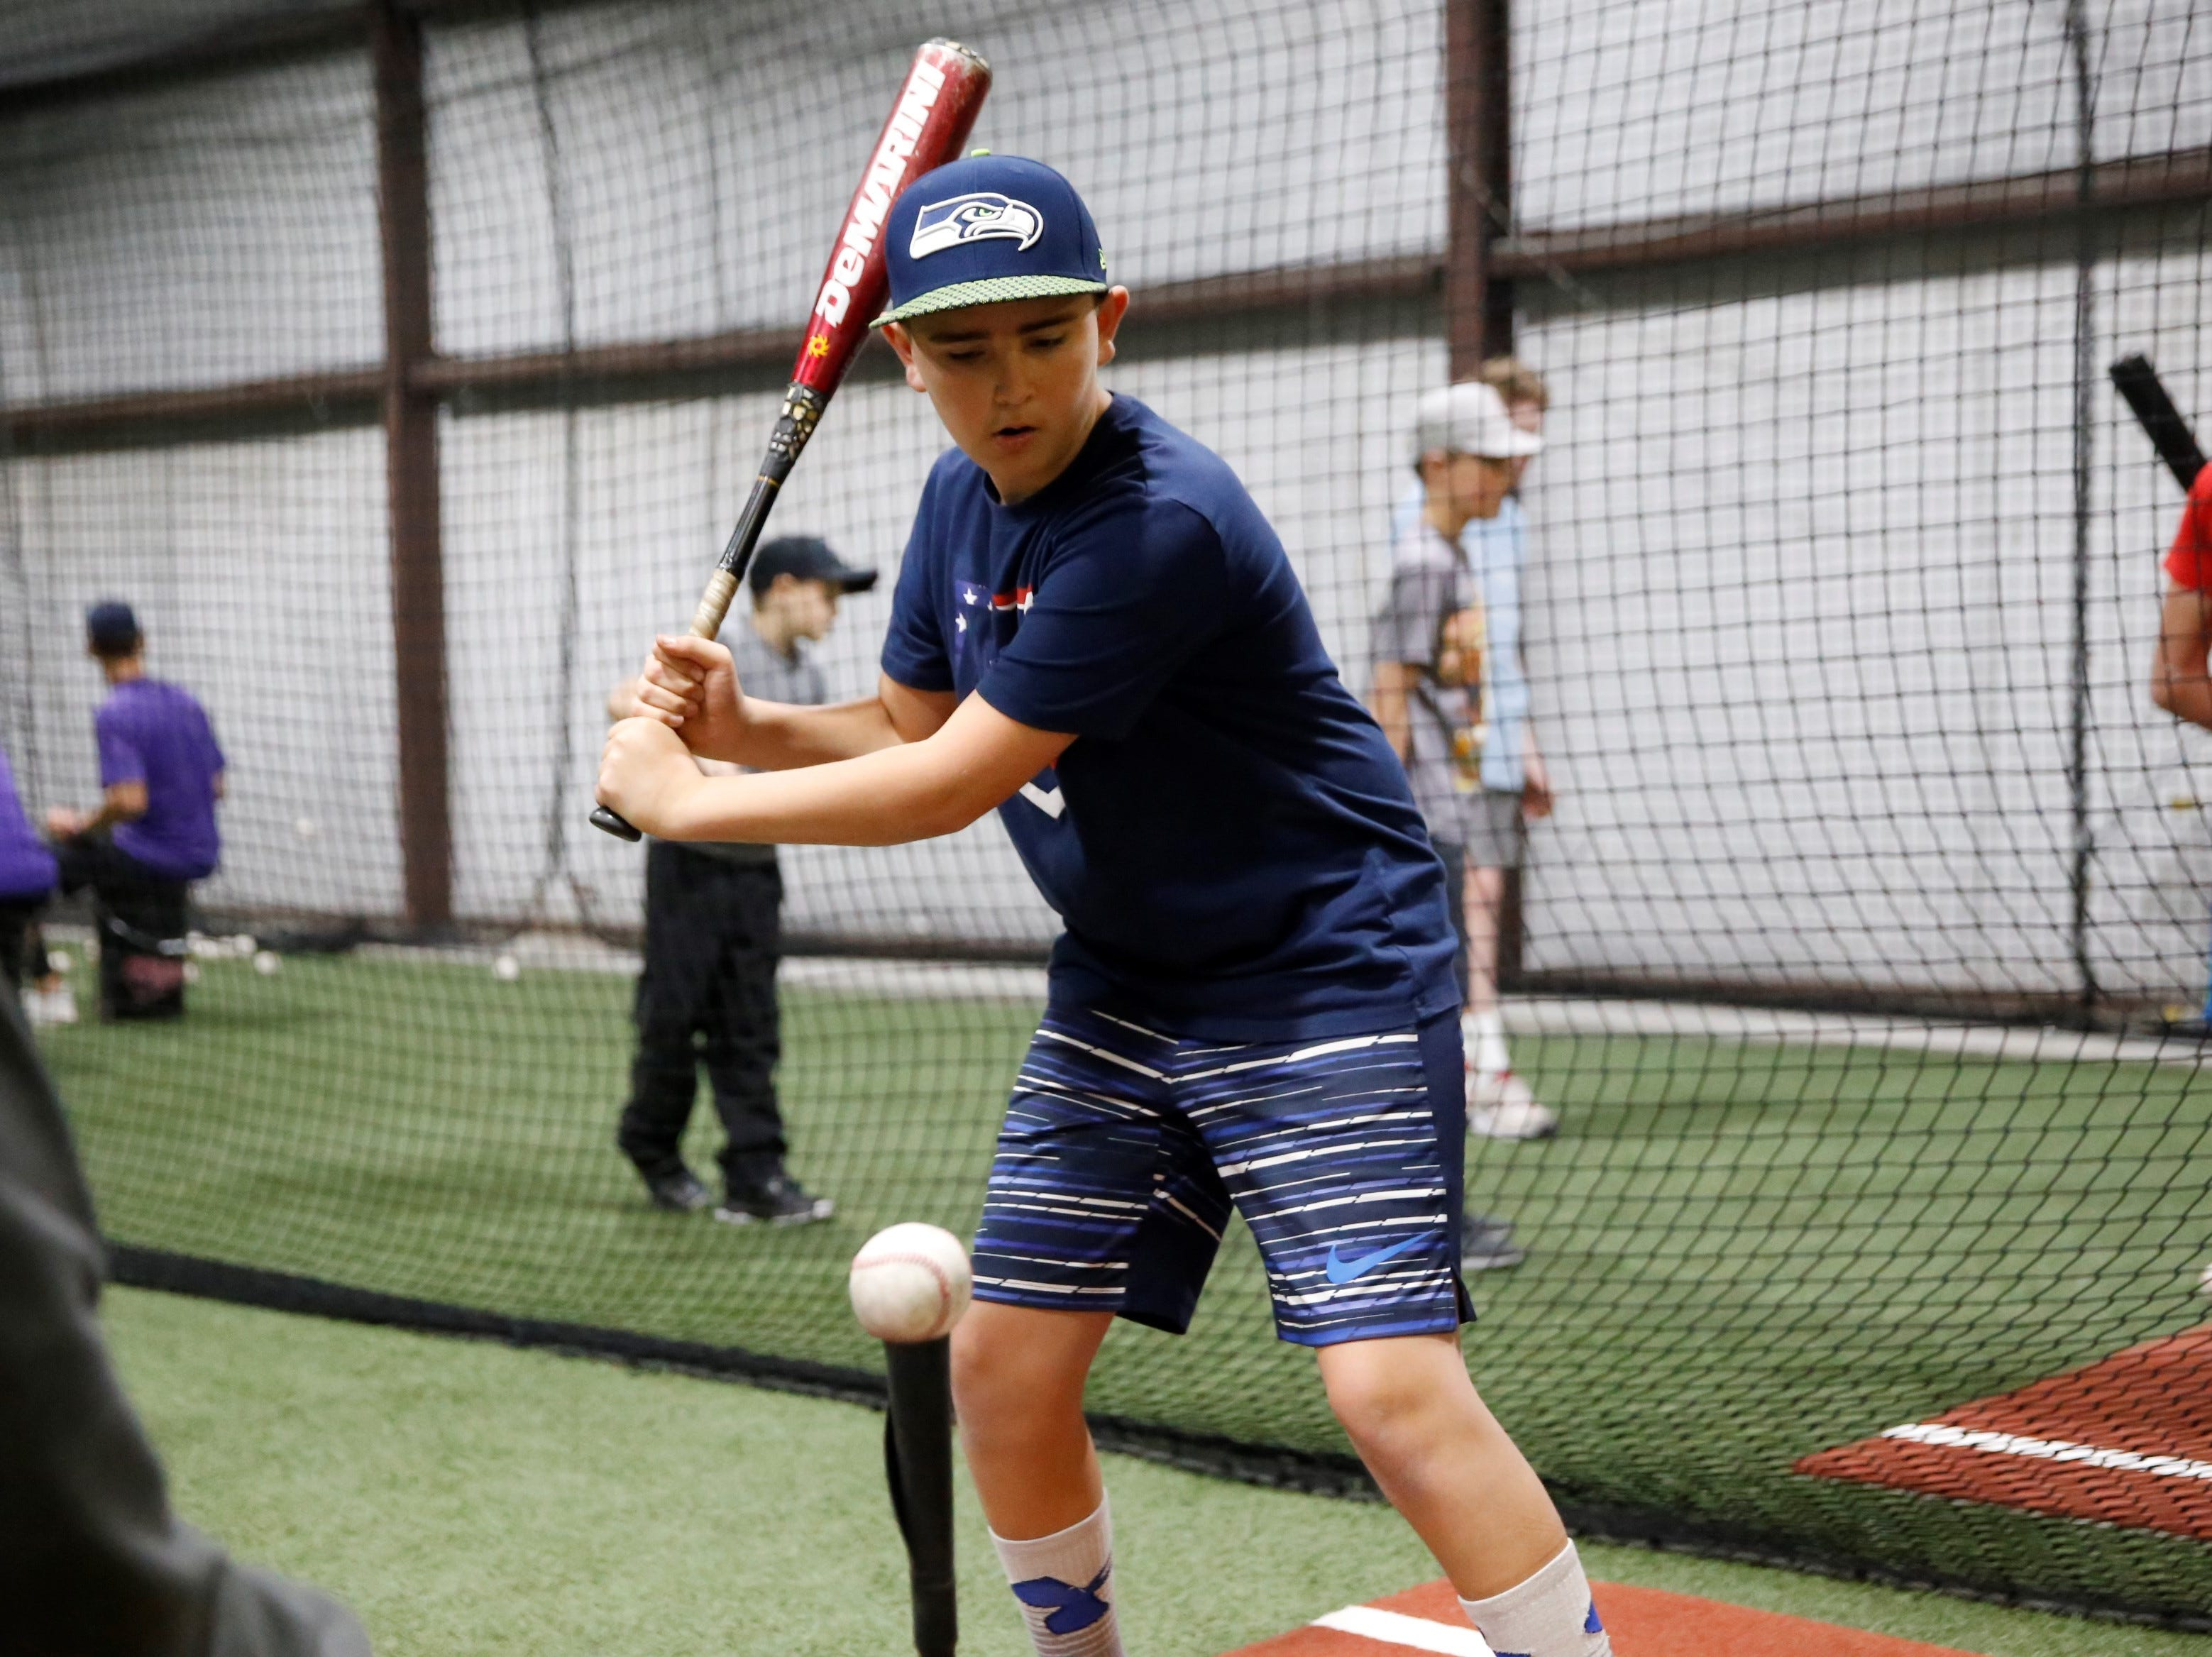 Austin Romero of Durango, Colorado, works on batting drills at the fourth annual Grinders for Grace baseball camp Saturday at the Strike Zone training facility in Farmington.